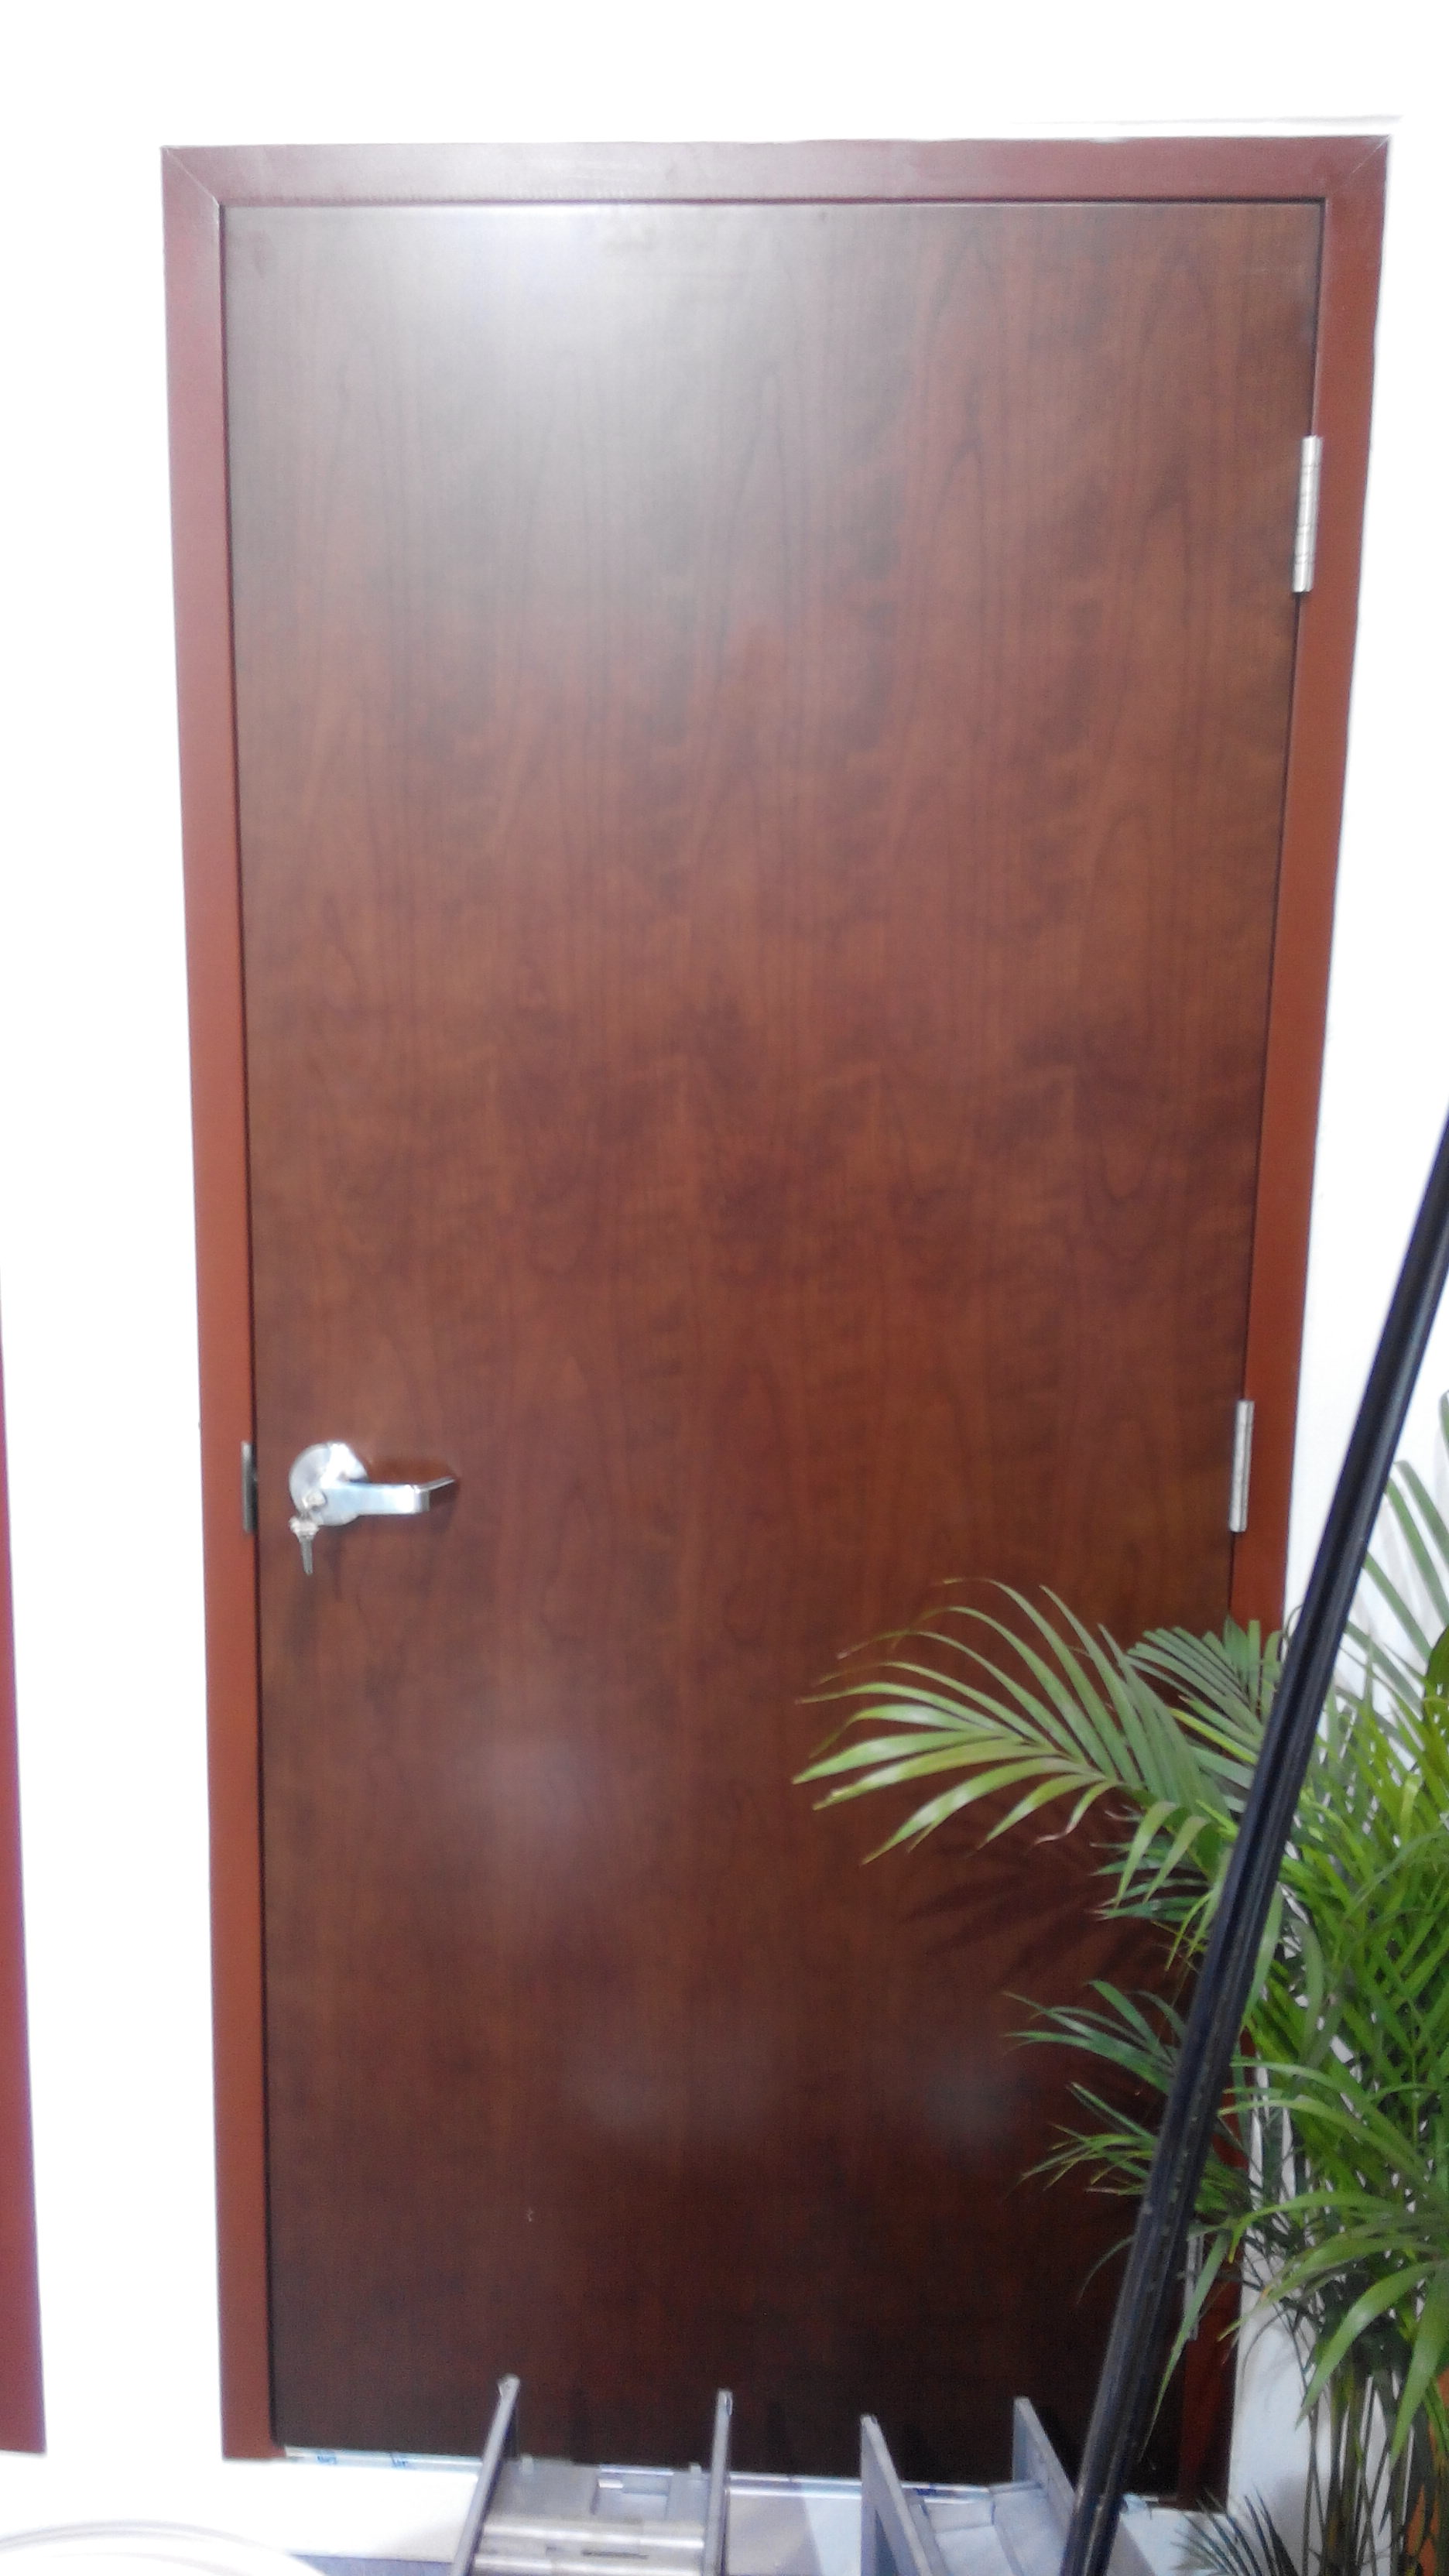 UL WH 20 30 45 90mins wood fire door MDF mineral fireboard oak birch walnut sapele veneer HPL